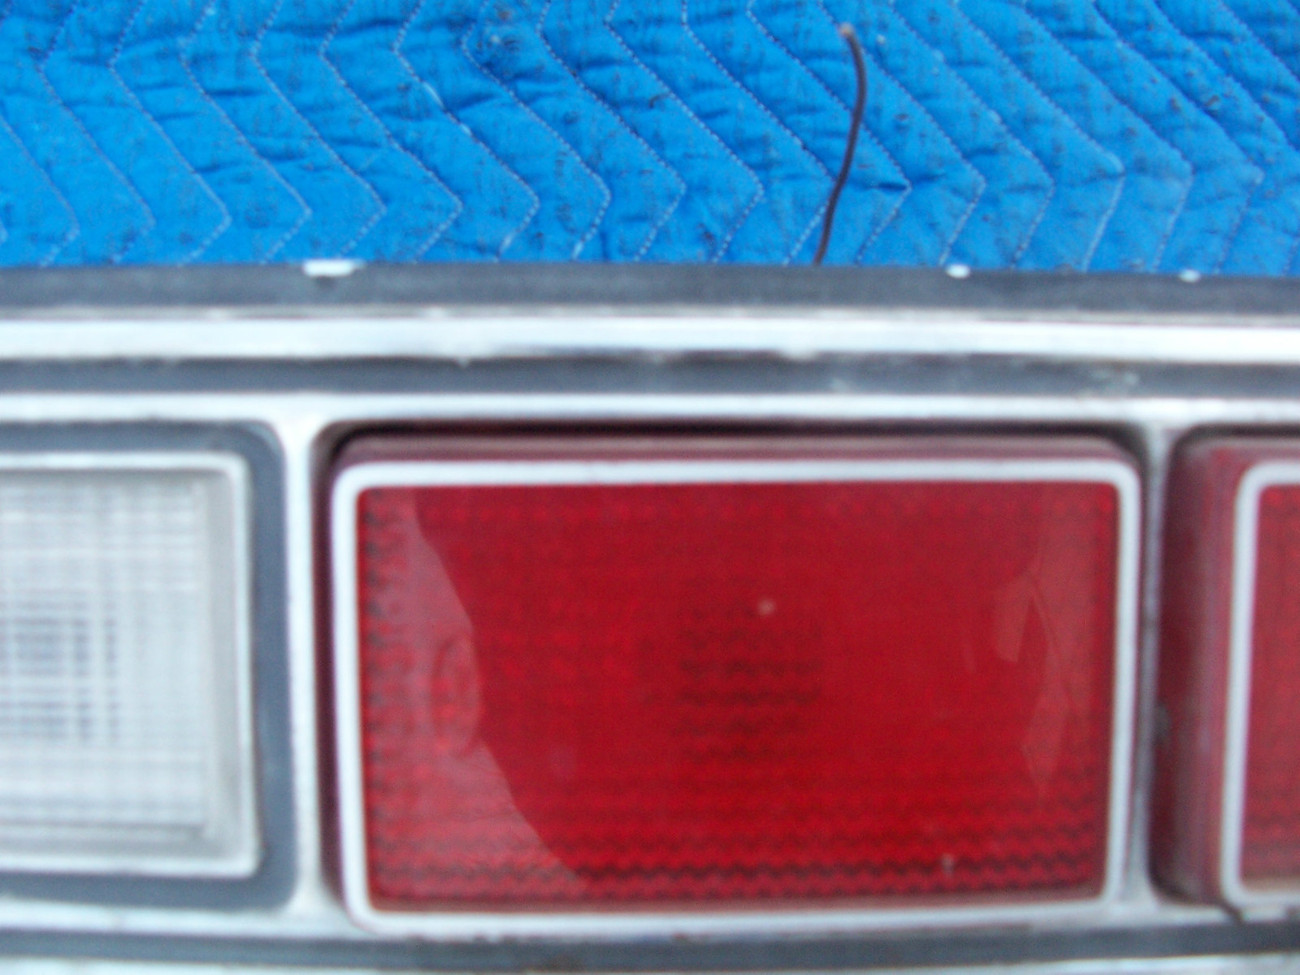 1973 MARQUIS 2 DOOR BROUGHAM RIGHT TAILLIGHT OEM USED ORIGINAL MERCURY FORD PART image 5